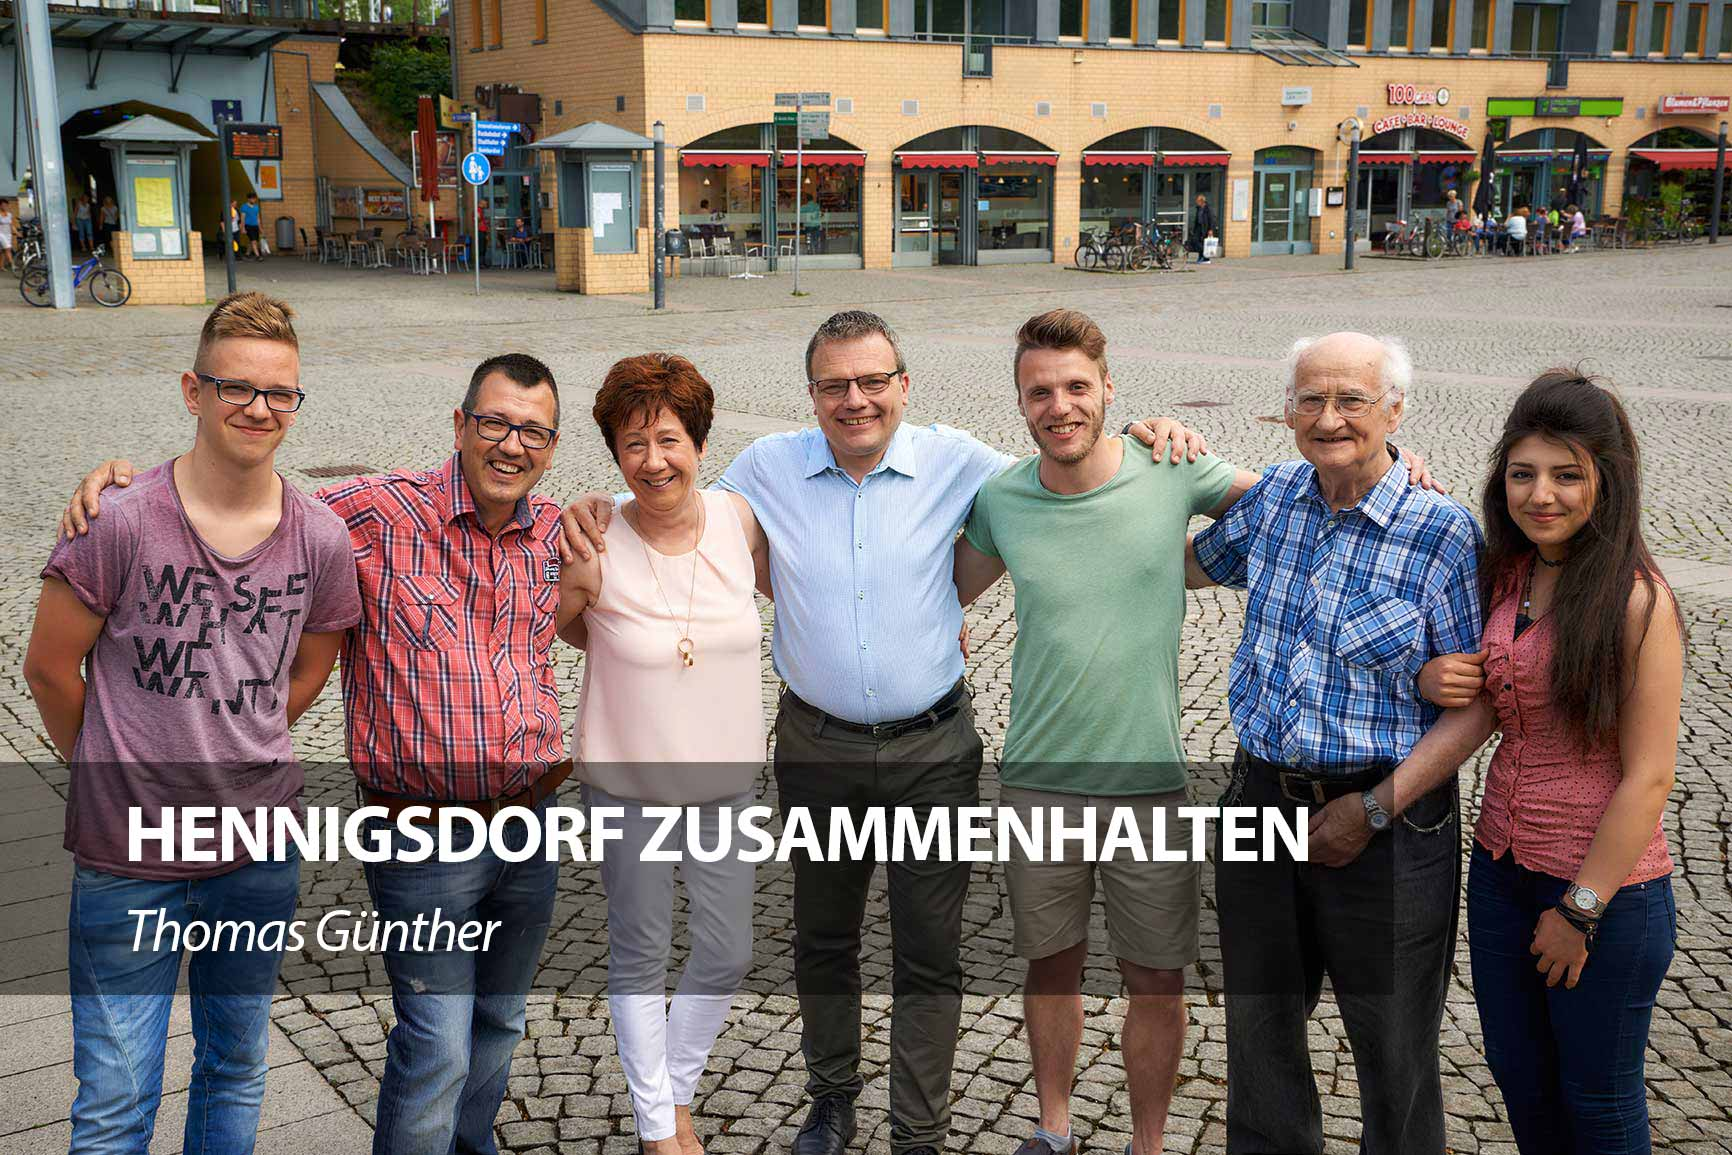 Single frauen hennigsdorf Hennigsdorf singles, Murphy Built Construction